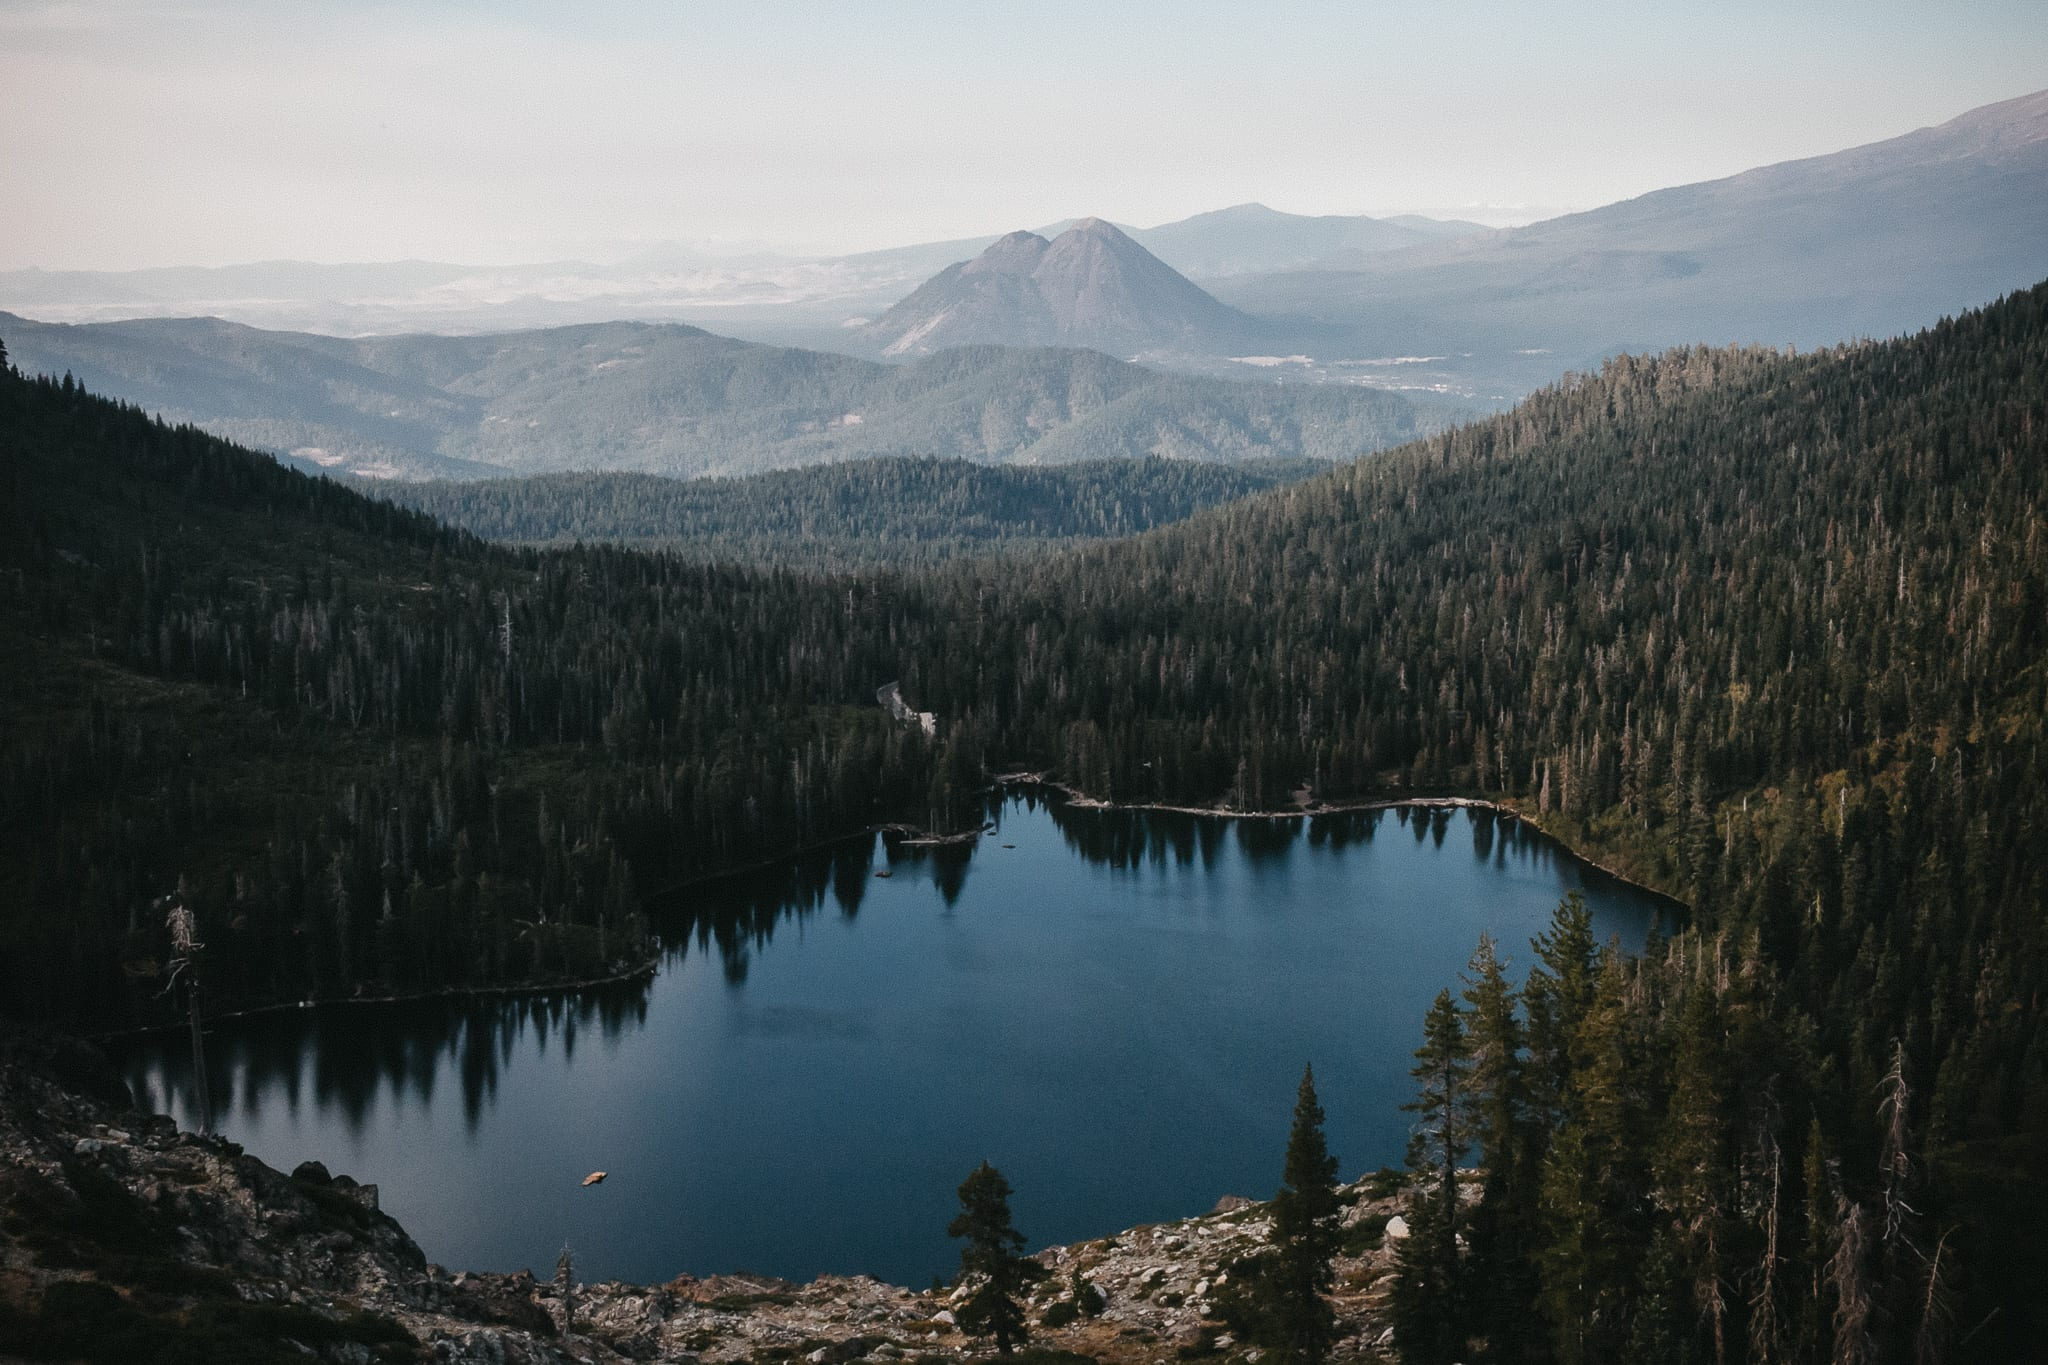 heart-lake-little-castle-lake-mt-shasta-7